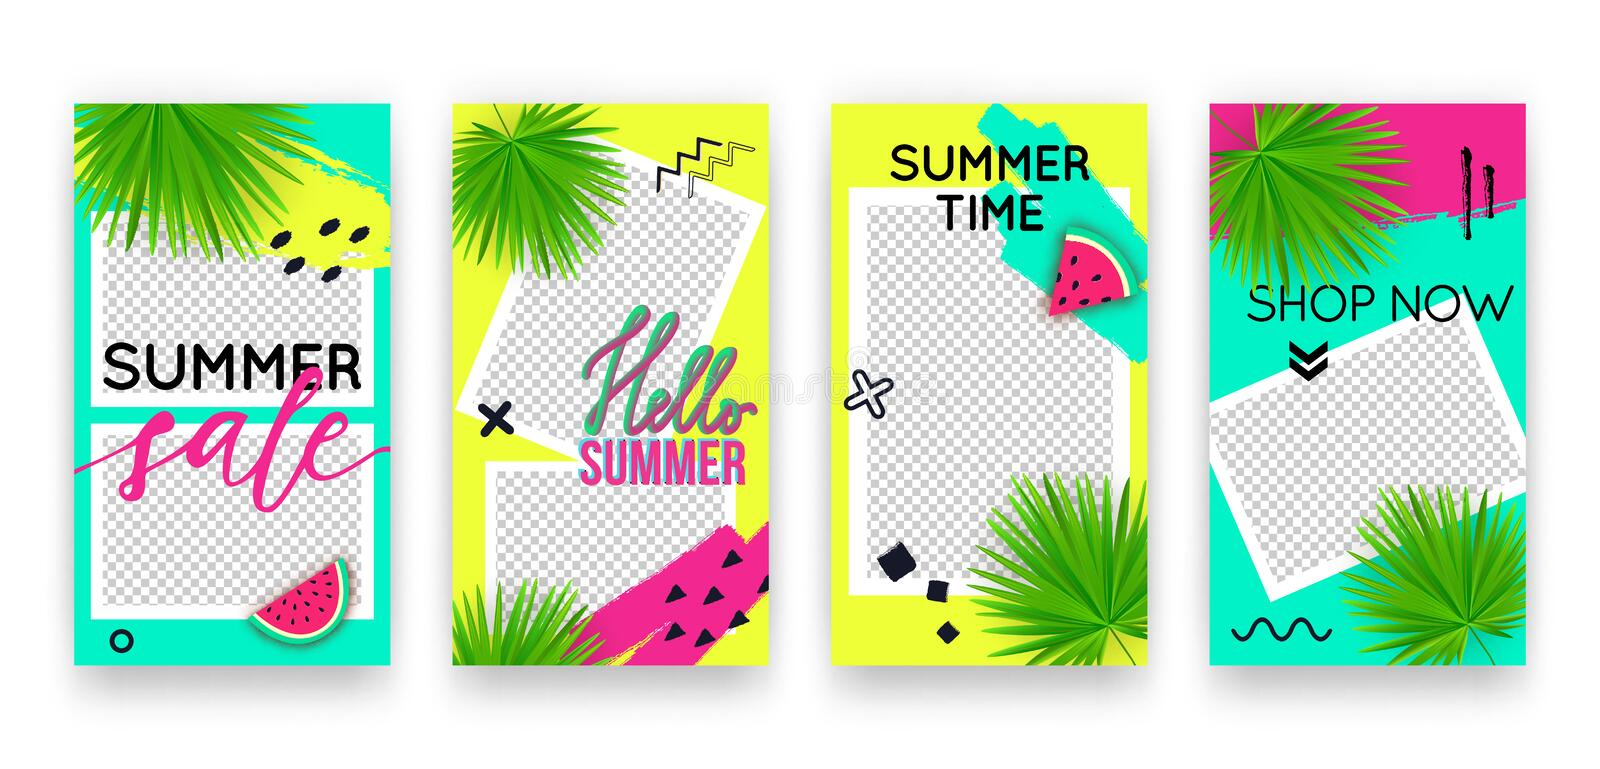 Vector trendy tropic editable set of templates for social media networks stories. Modern summer design backgrounds with watermelon vector illustration